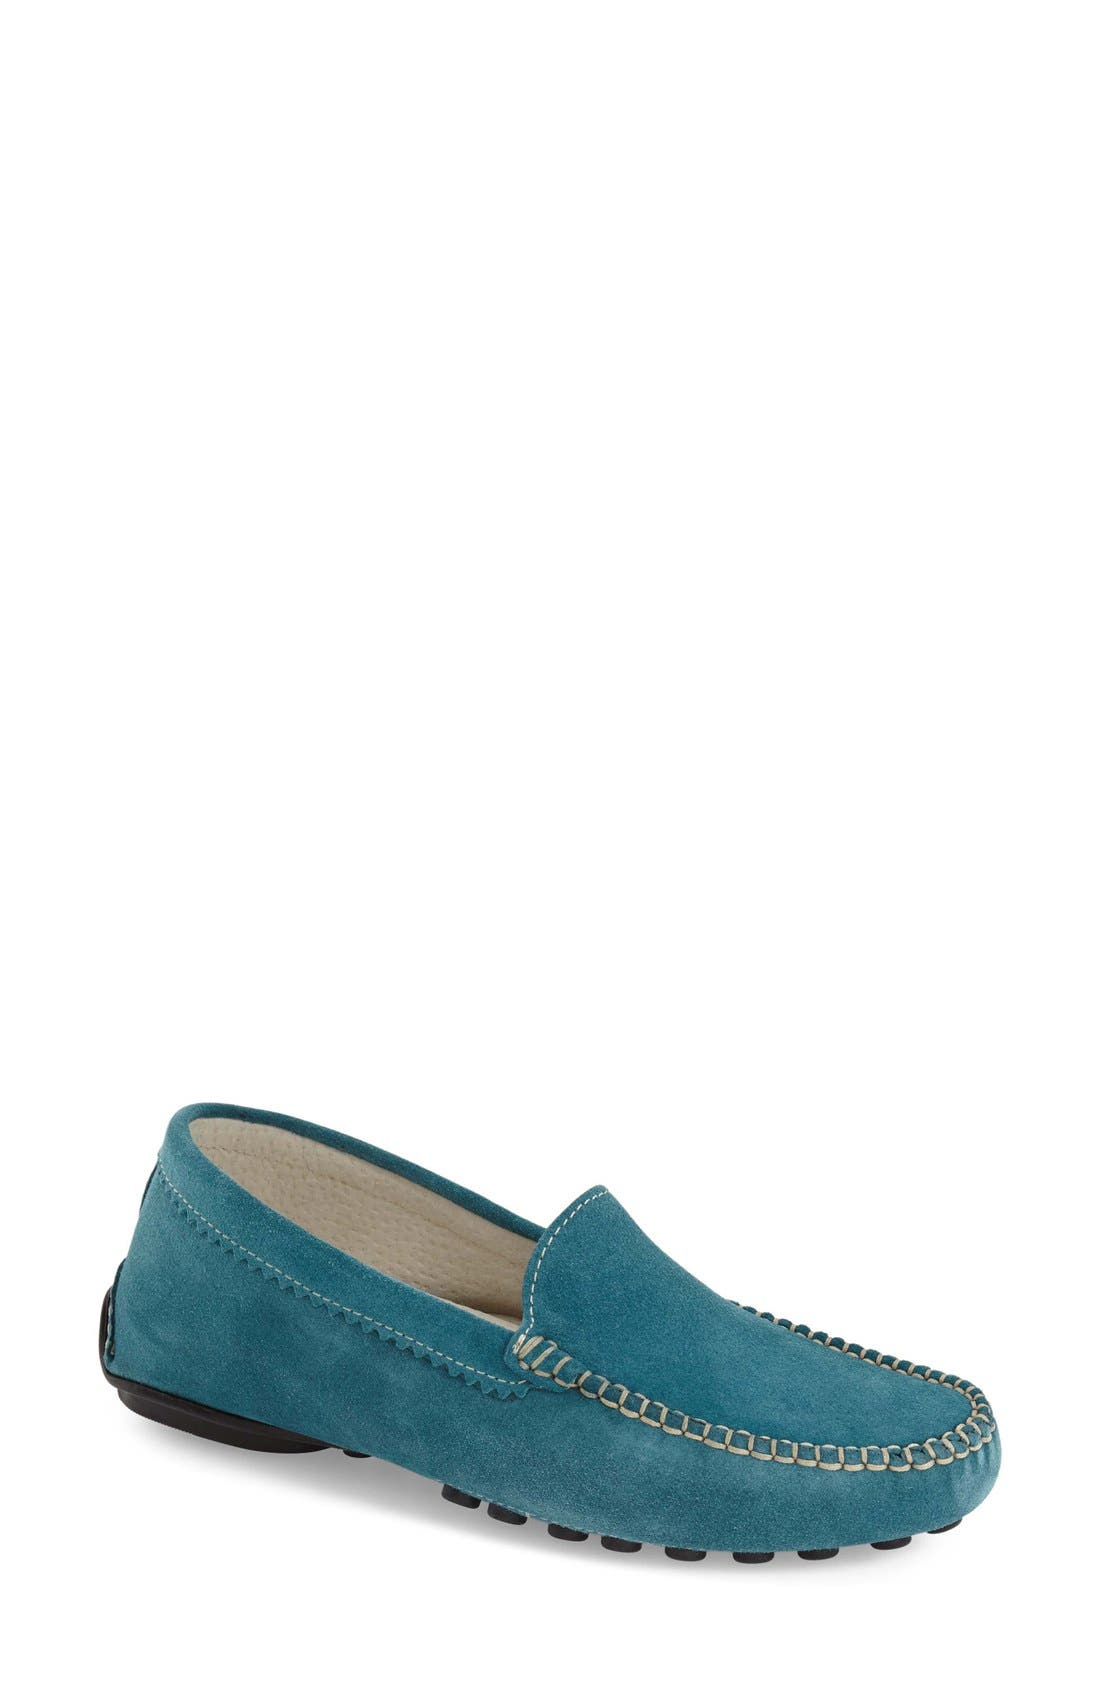 Alternate Image 1 Selected - French Sole 'Stella' Loafer